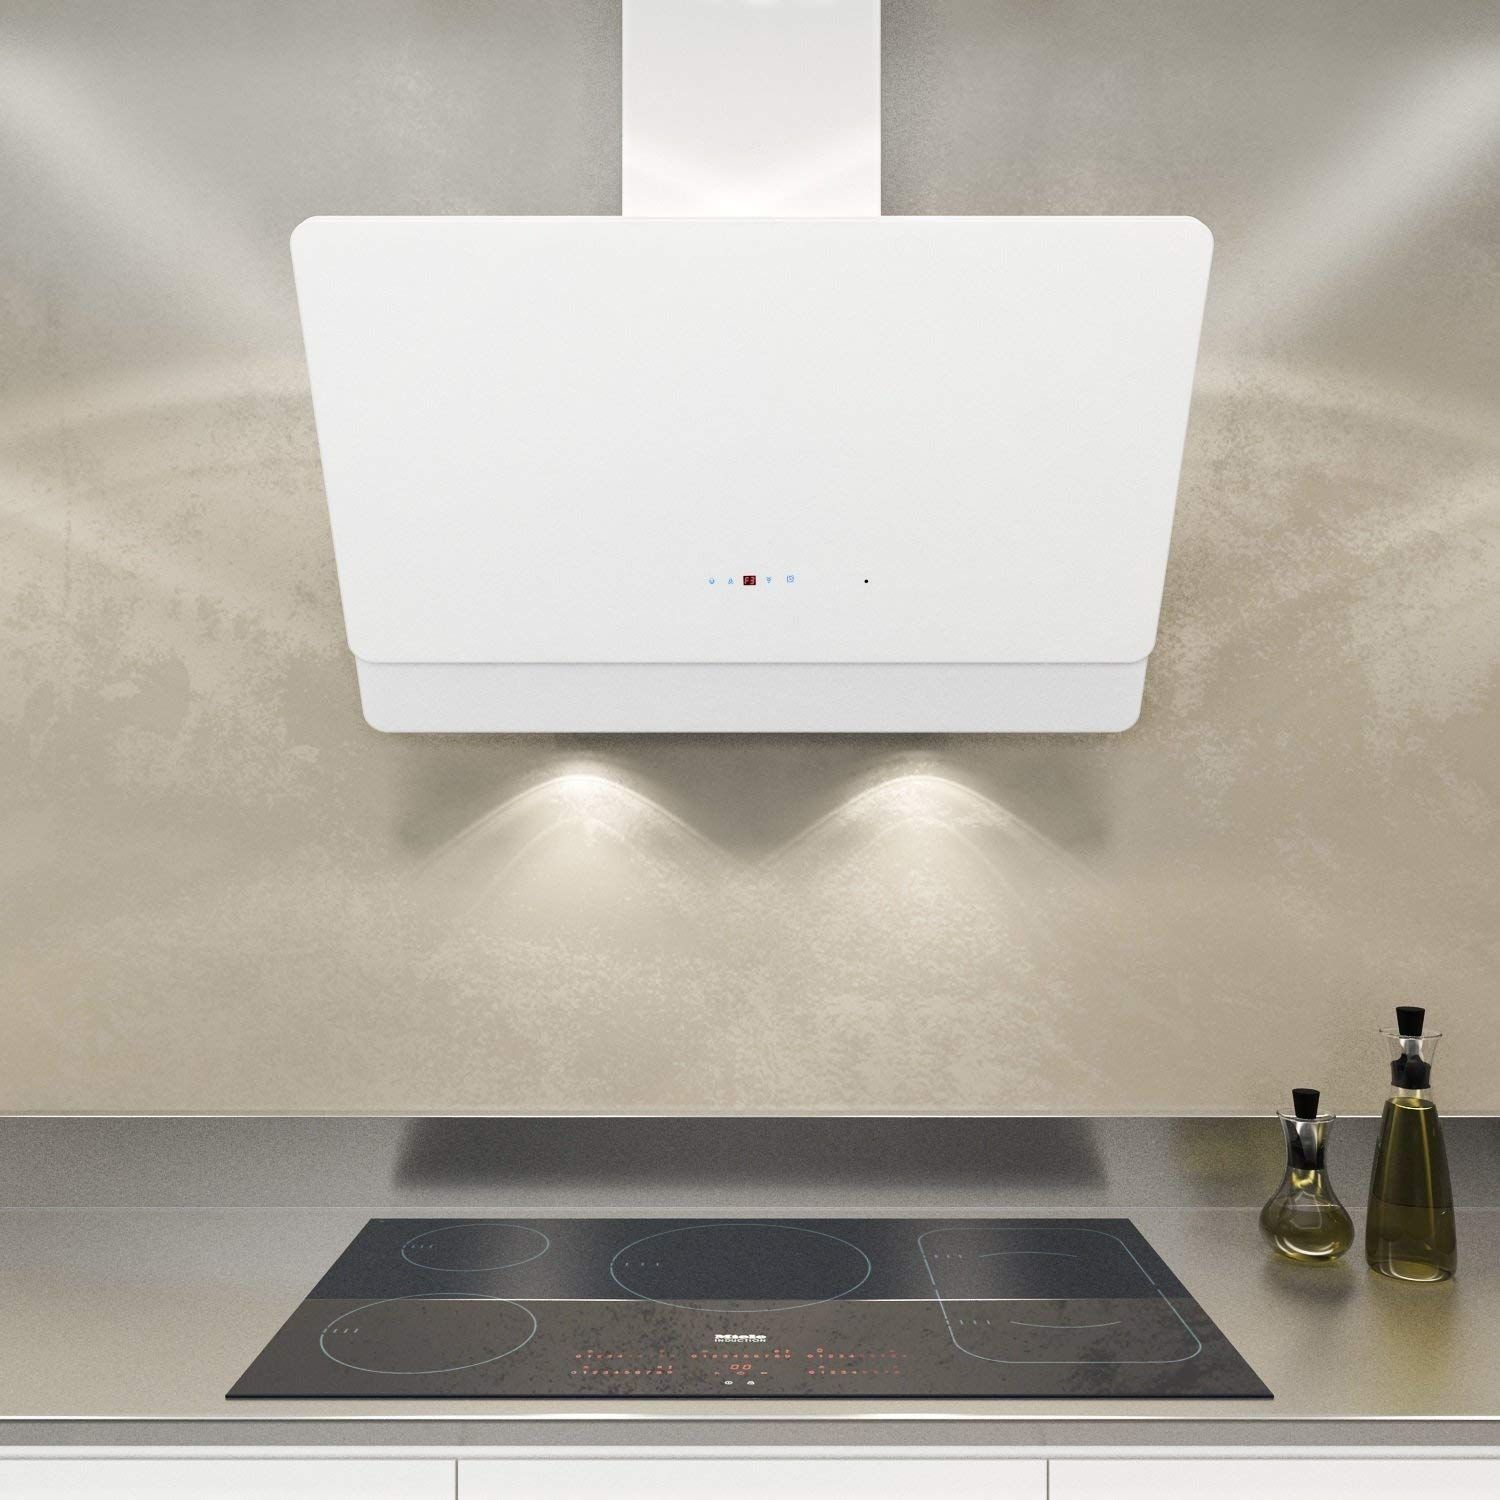 Neg Cooker Hood Kf599 Extraction Circulating Air Amazon De Large Appliances In 2020 Dunstabzugshaube Led Beleuchtung Abluft